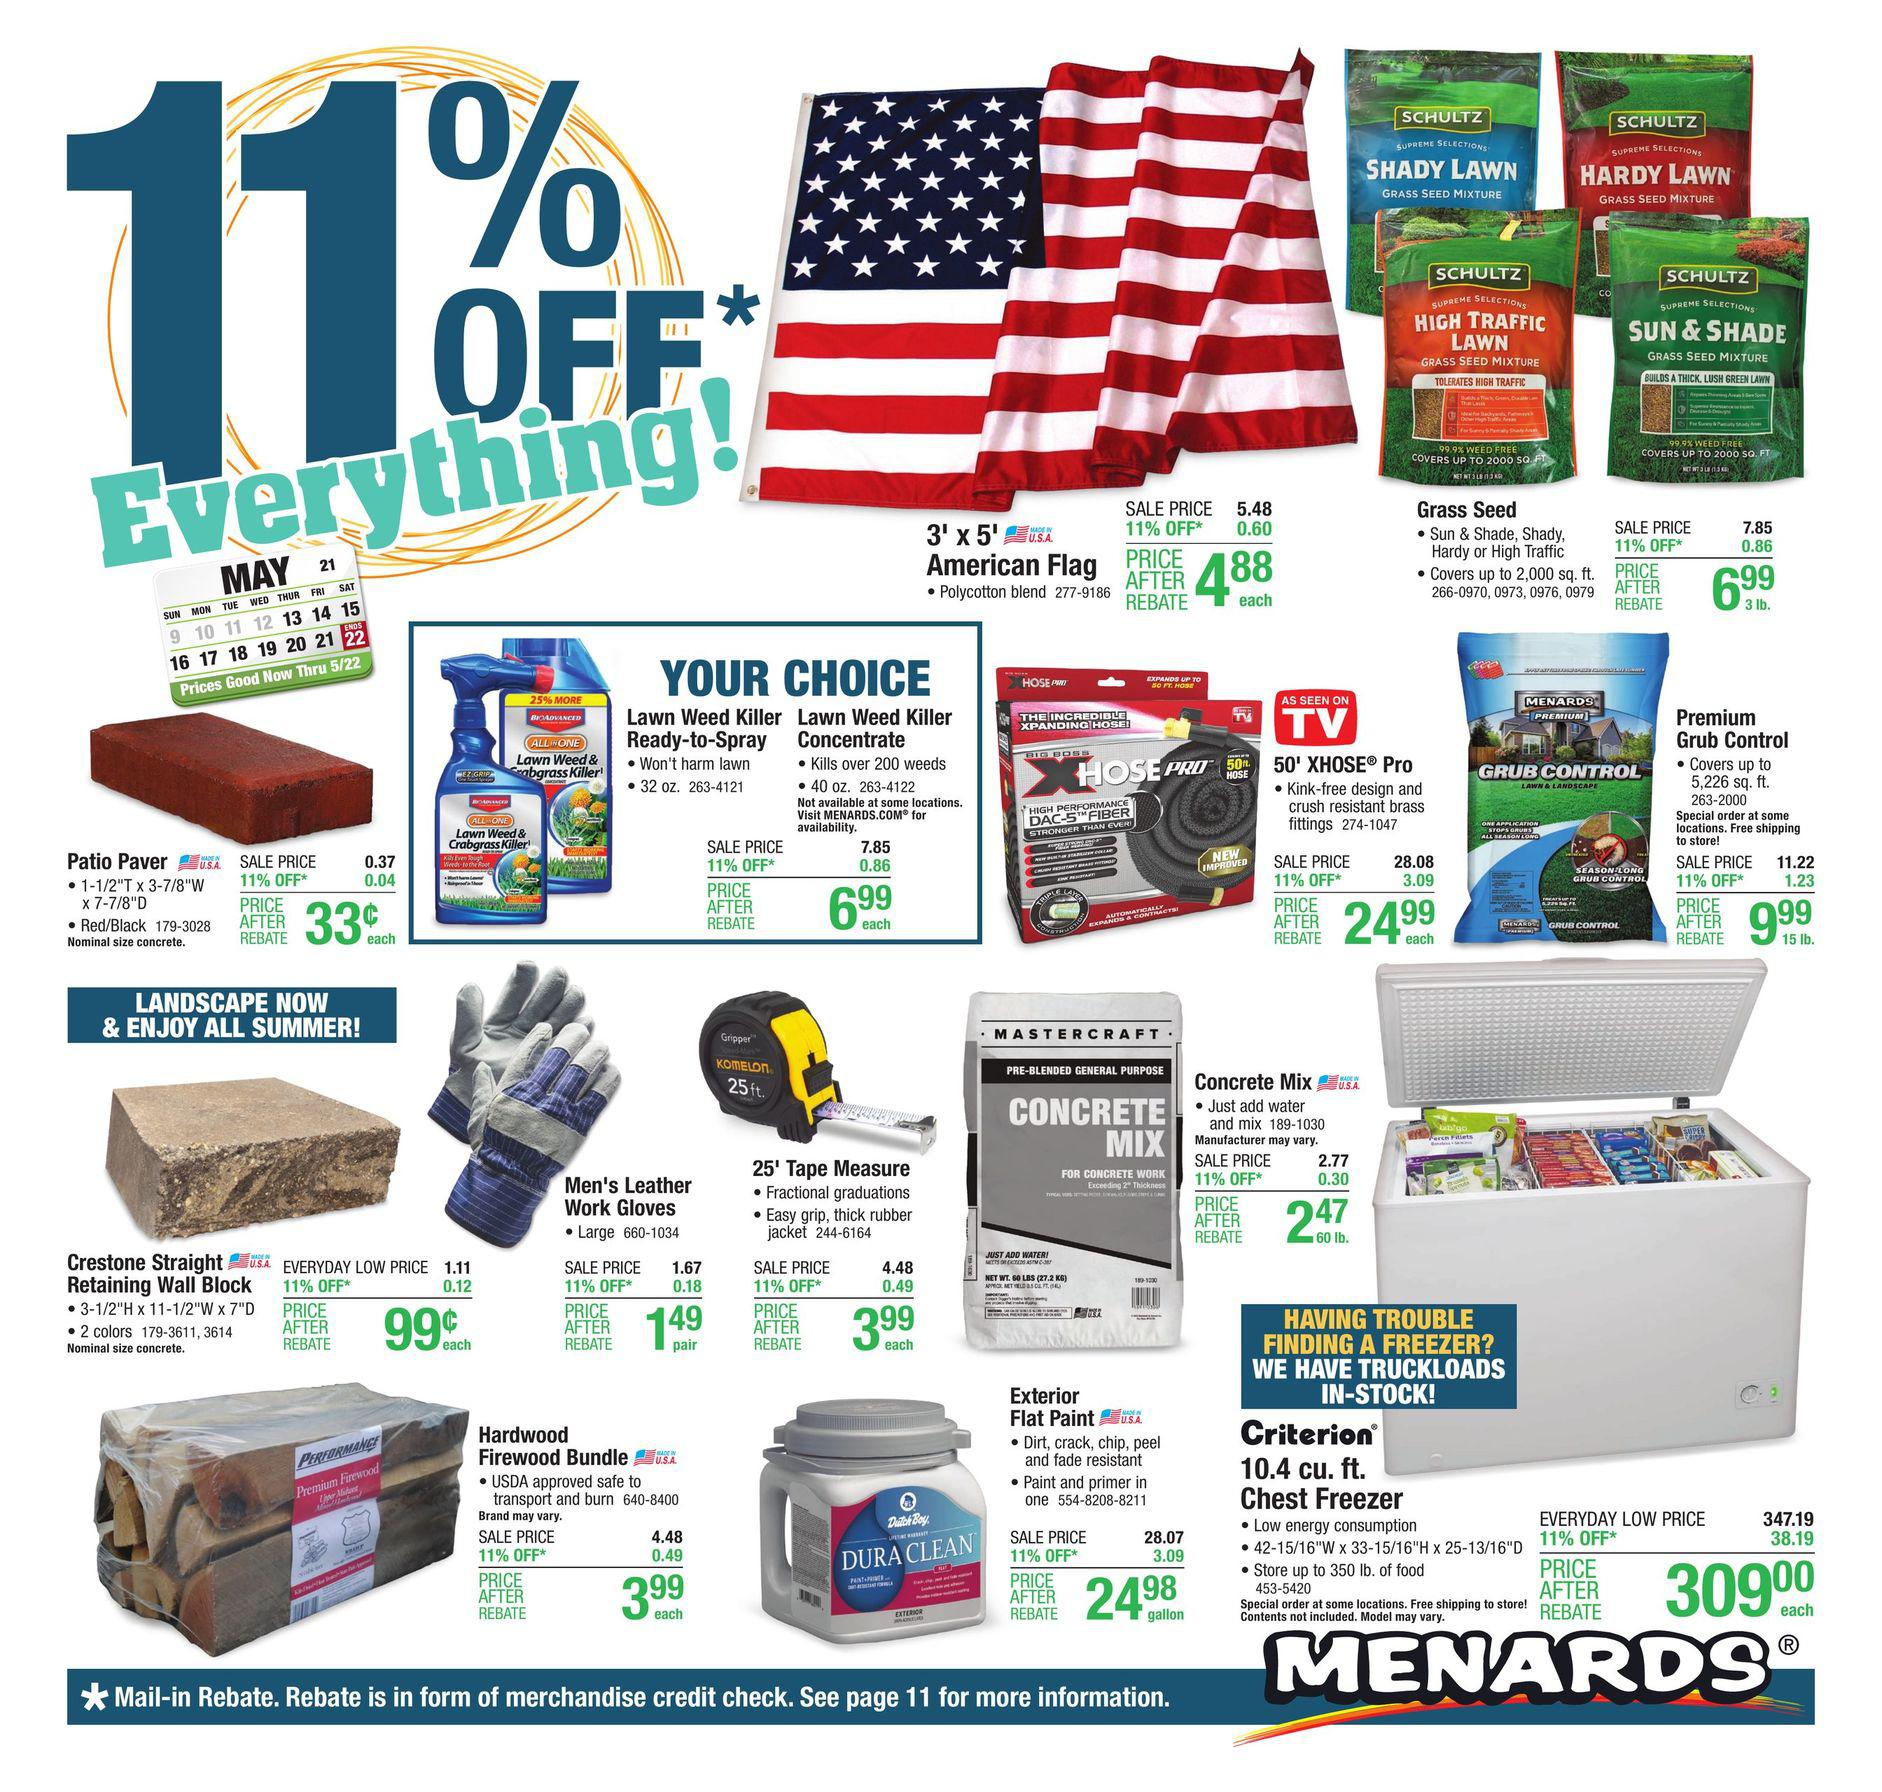 Menards Ad Deals May 13 - May 22, 2021